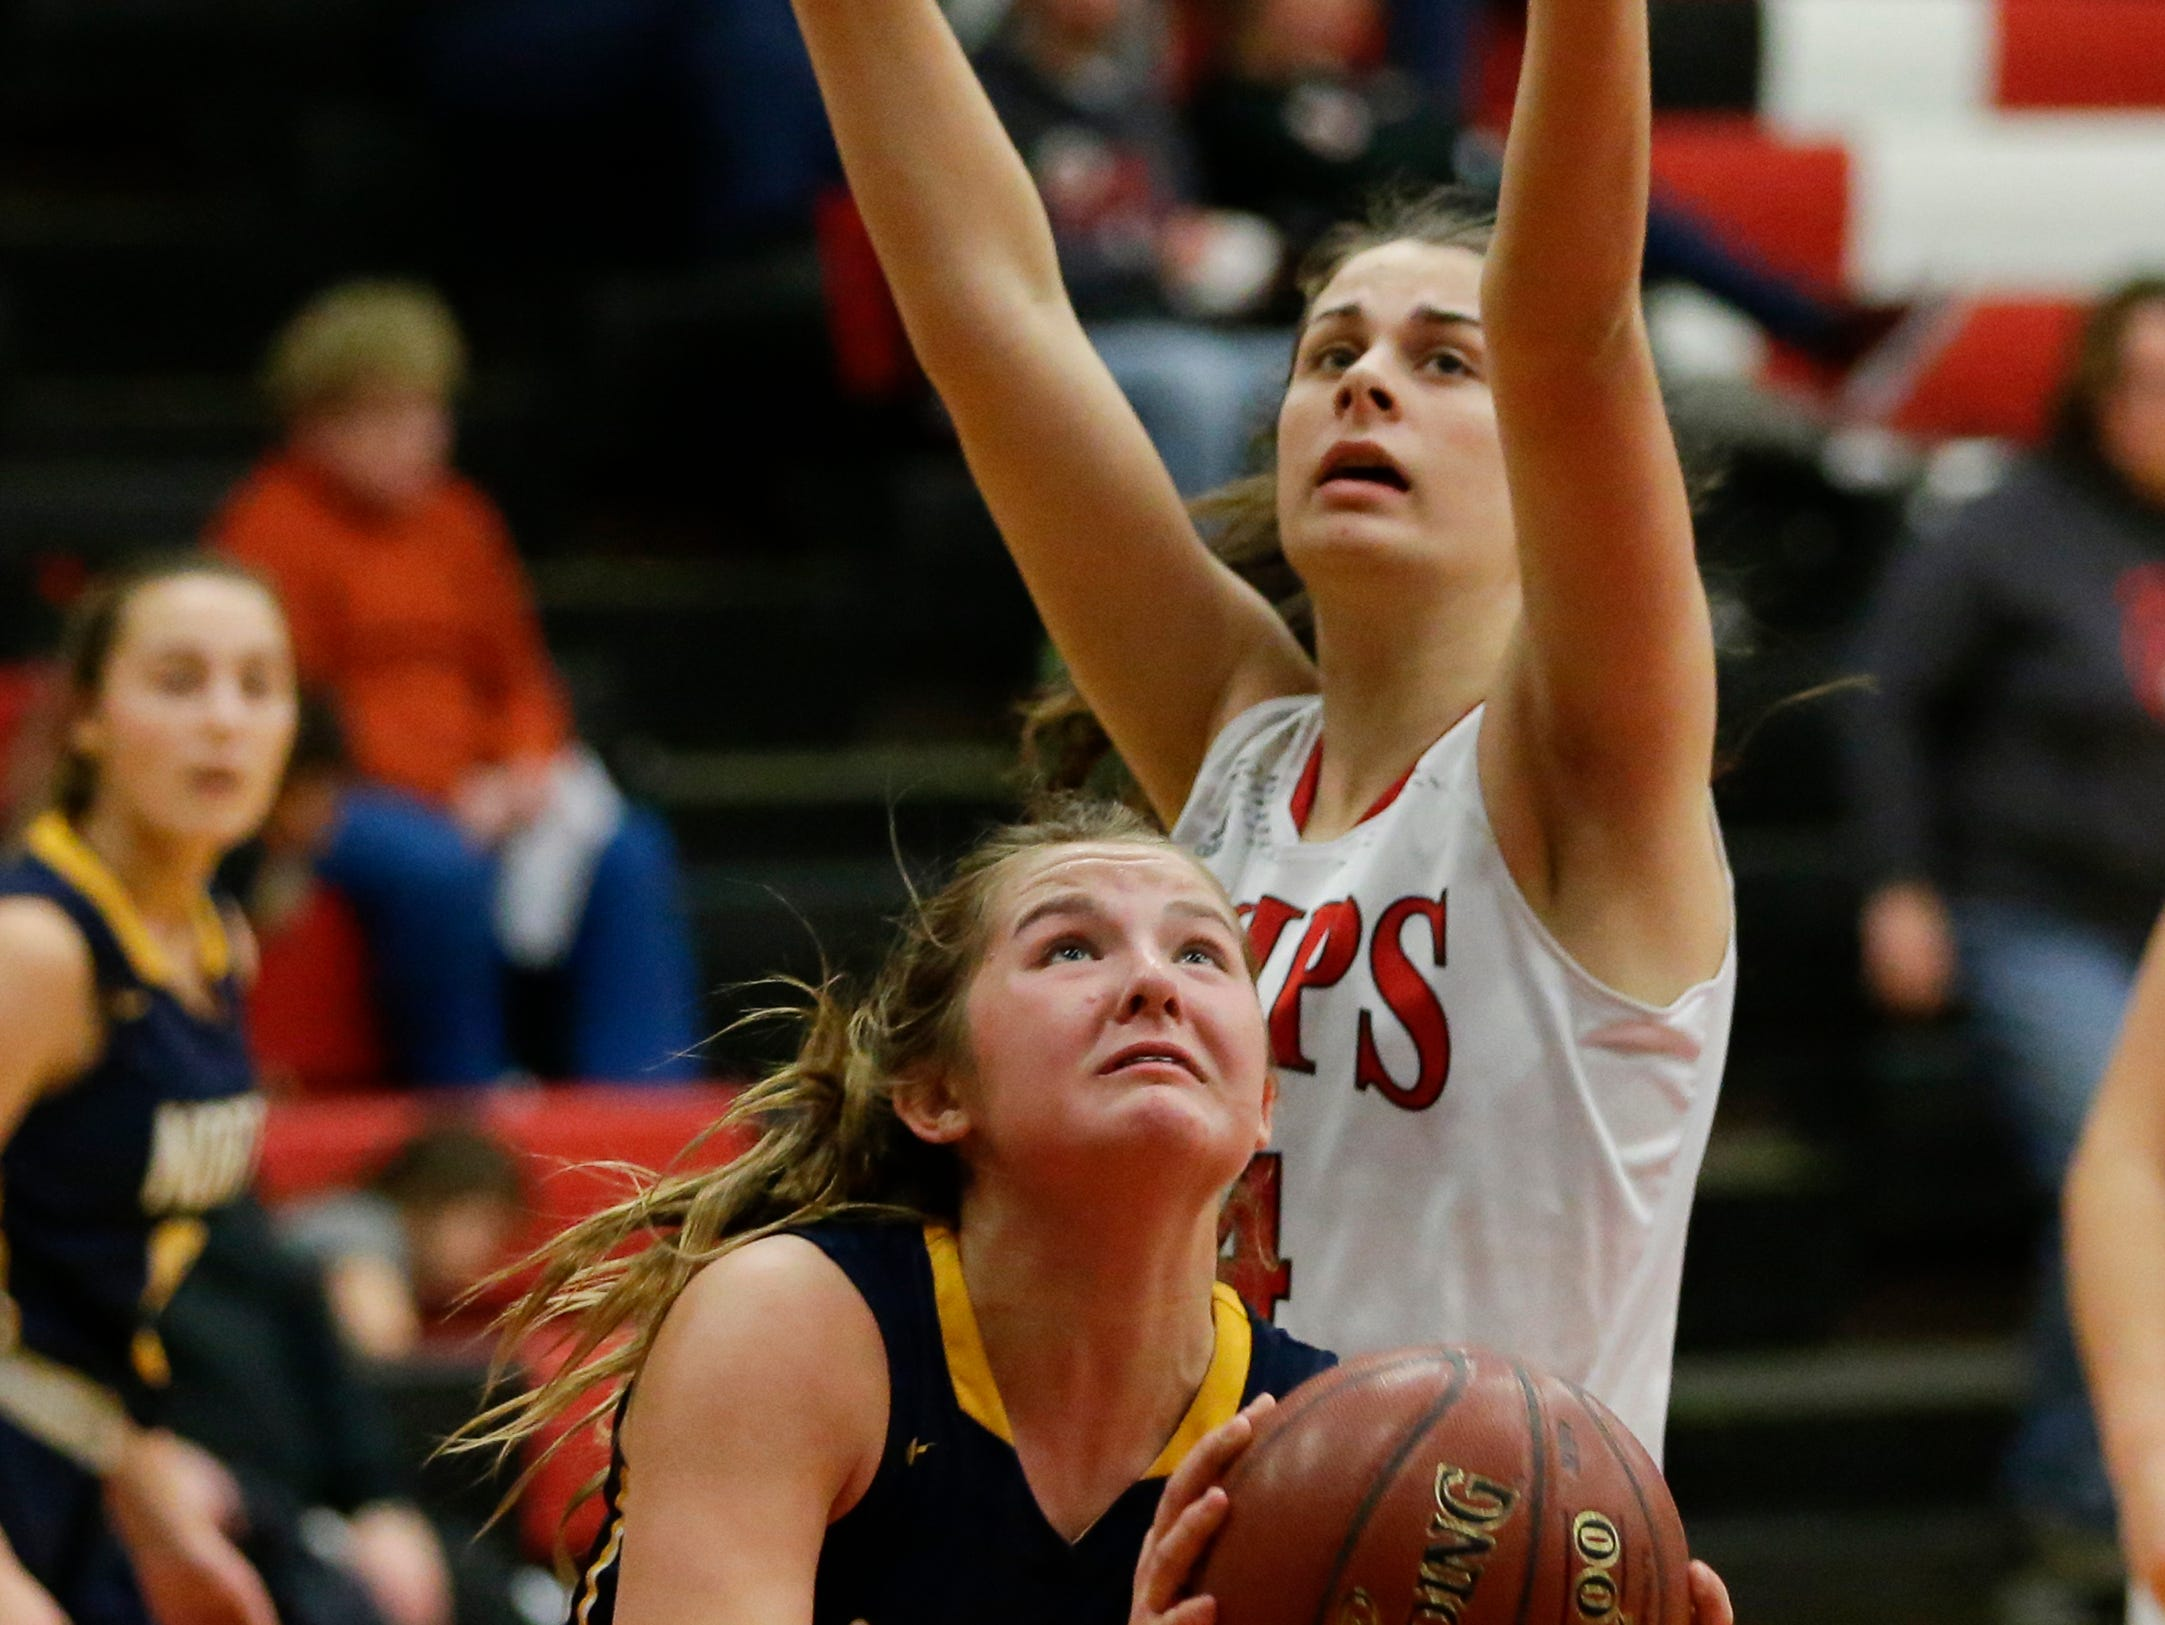 Sheboygan North's Emma Belmore goes under Manitowoc Lincoln's Claire Swoboda for a shot during a Fox River Classic Conference game at Manitowoc Lincoln High School Friday, December 14, 2018, in Manitowoc, Wis. Joshua Clark/USA TODAY NETWORK-Wisconsin